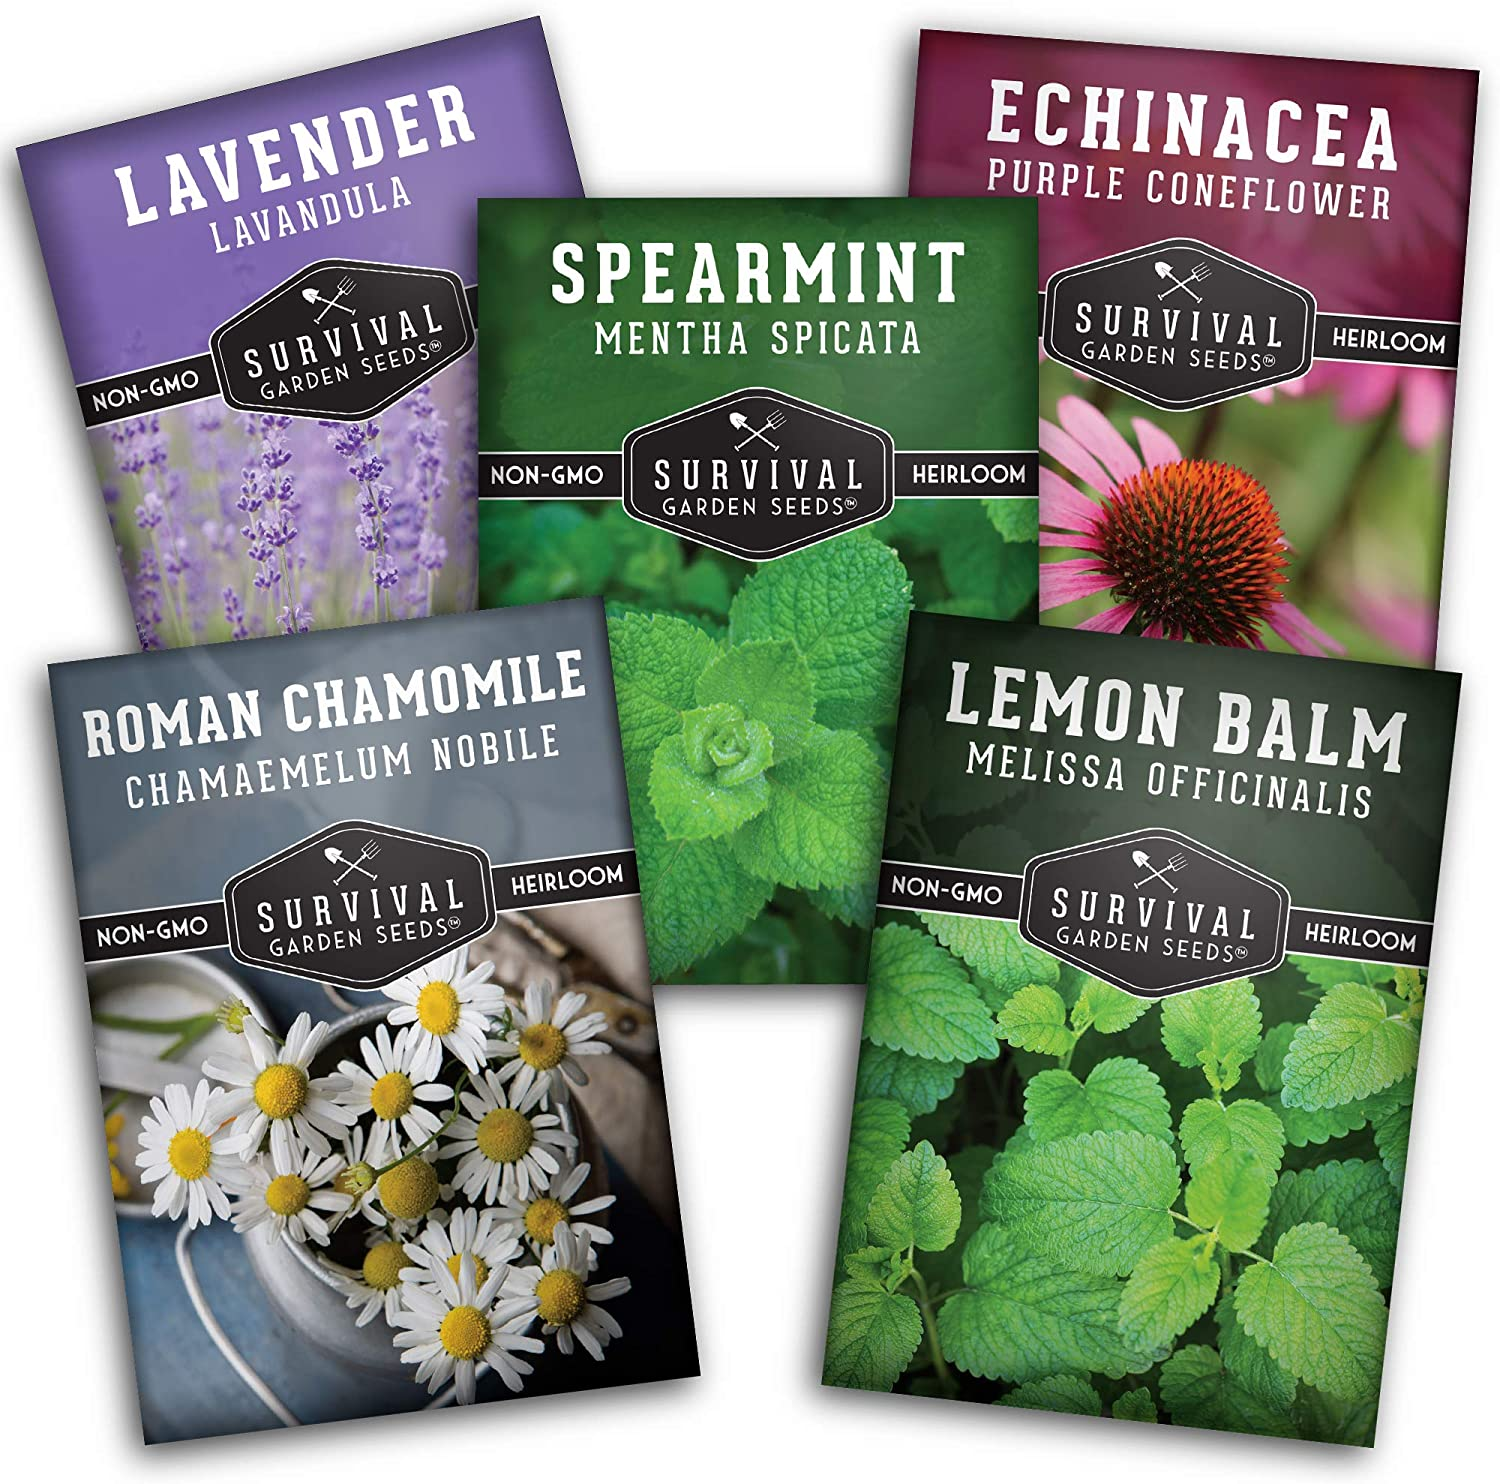 Survival Garden Seeds Herbal Tea Collection Seed Vault - Lavender, Mint, Echinacea, Lemon Balm, Parsley, Roman Chamomile - Non-GMO Heirloom Seeds for Planting & Growing